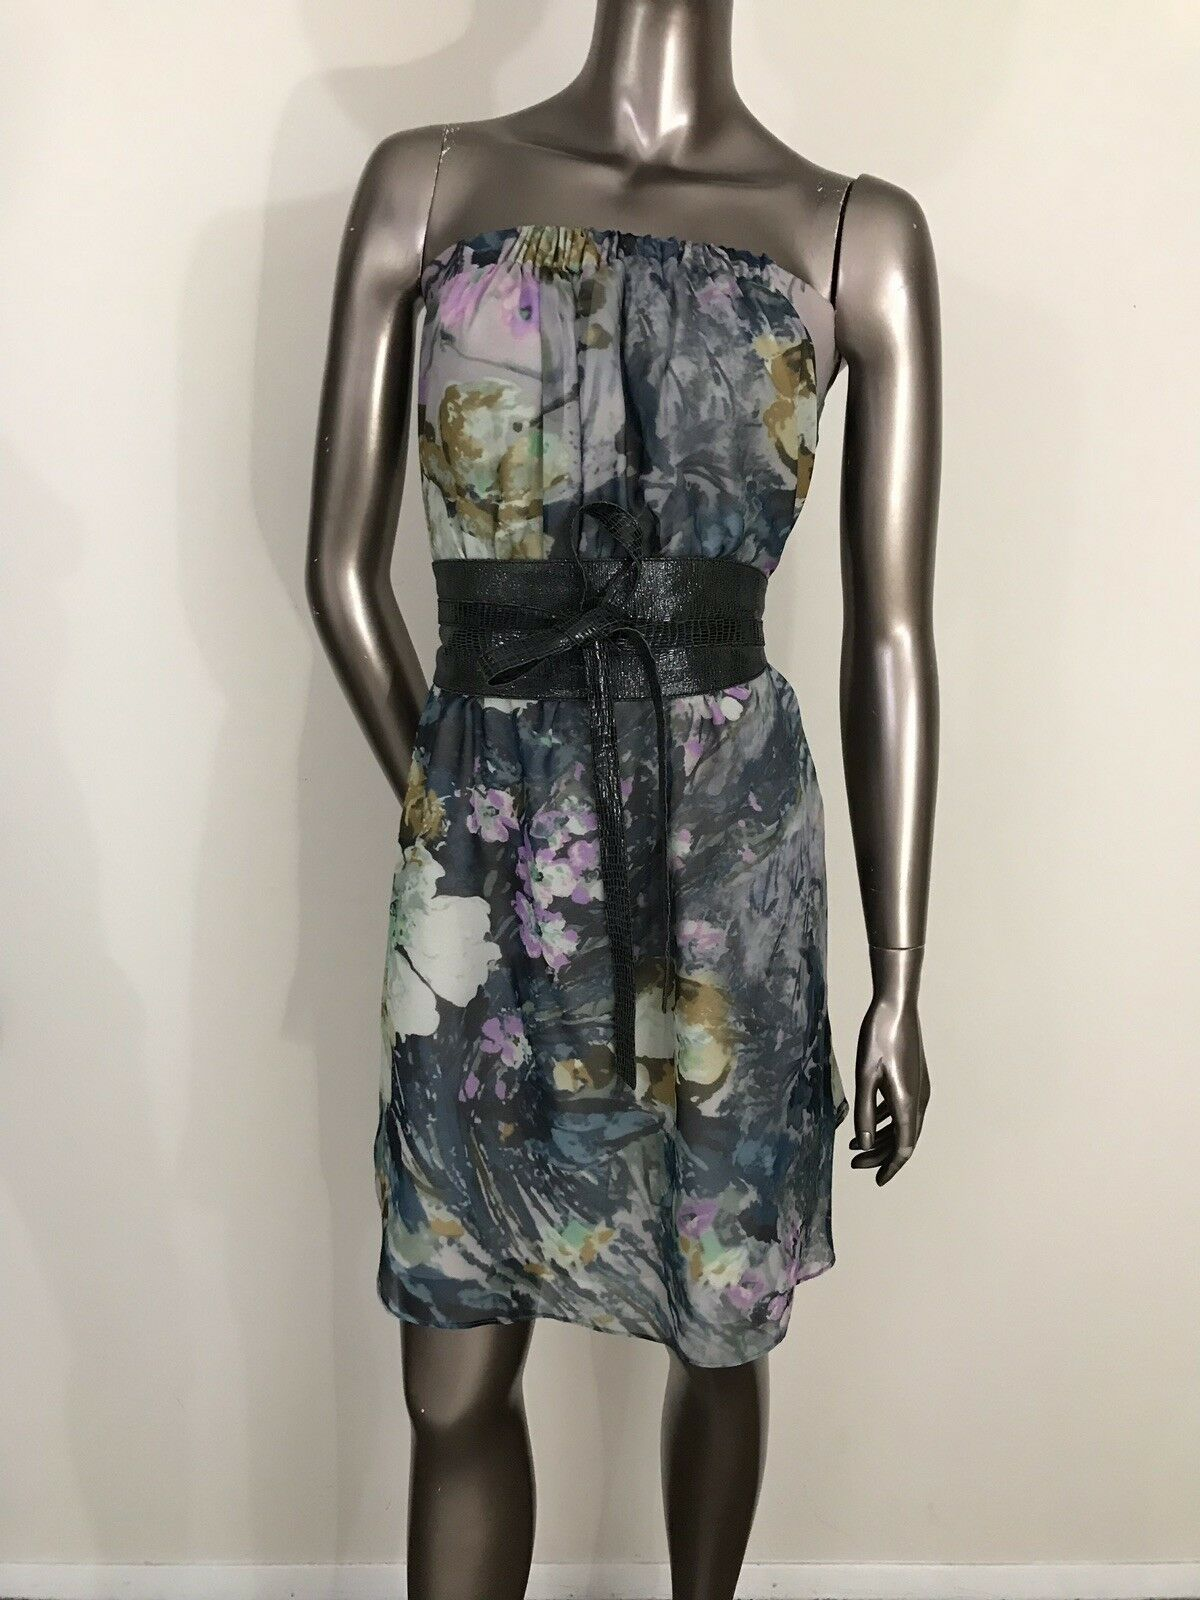 Haute Hippie strapless 100% silk floral dress belted size S or US 4